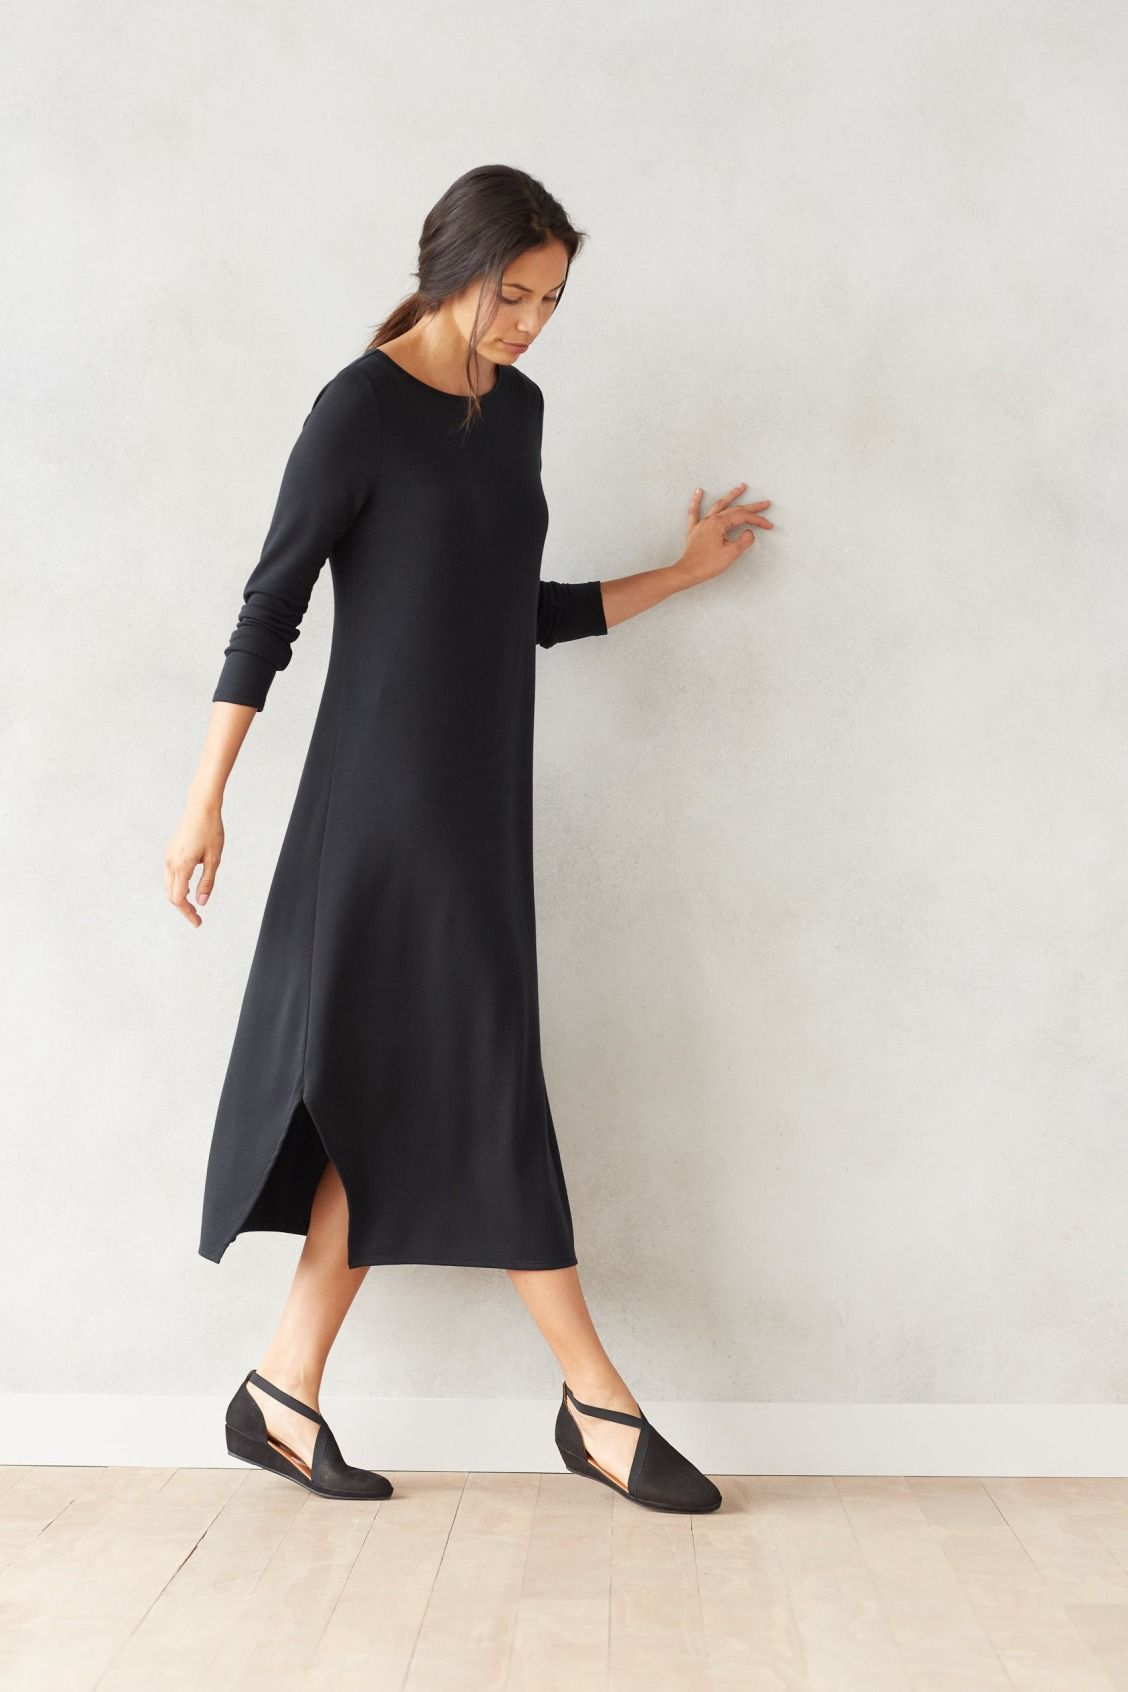 3eead528207 Comfort and ease (featuring the Pure Jill Luxe Tencel dipped-hem dress).